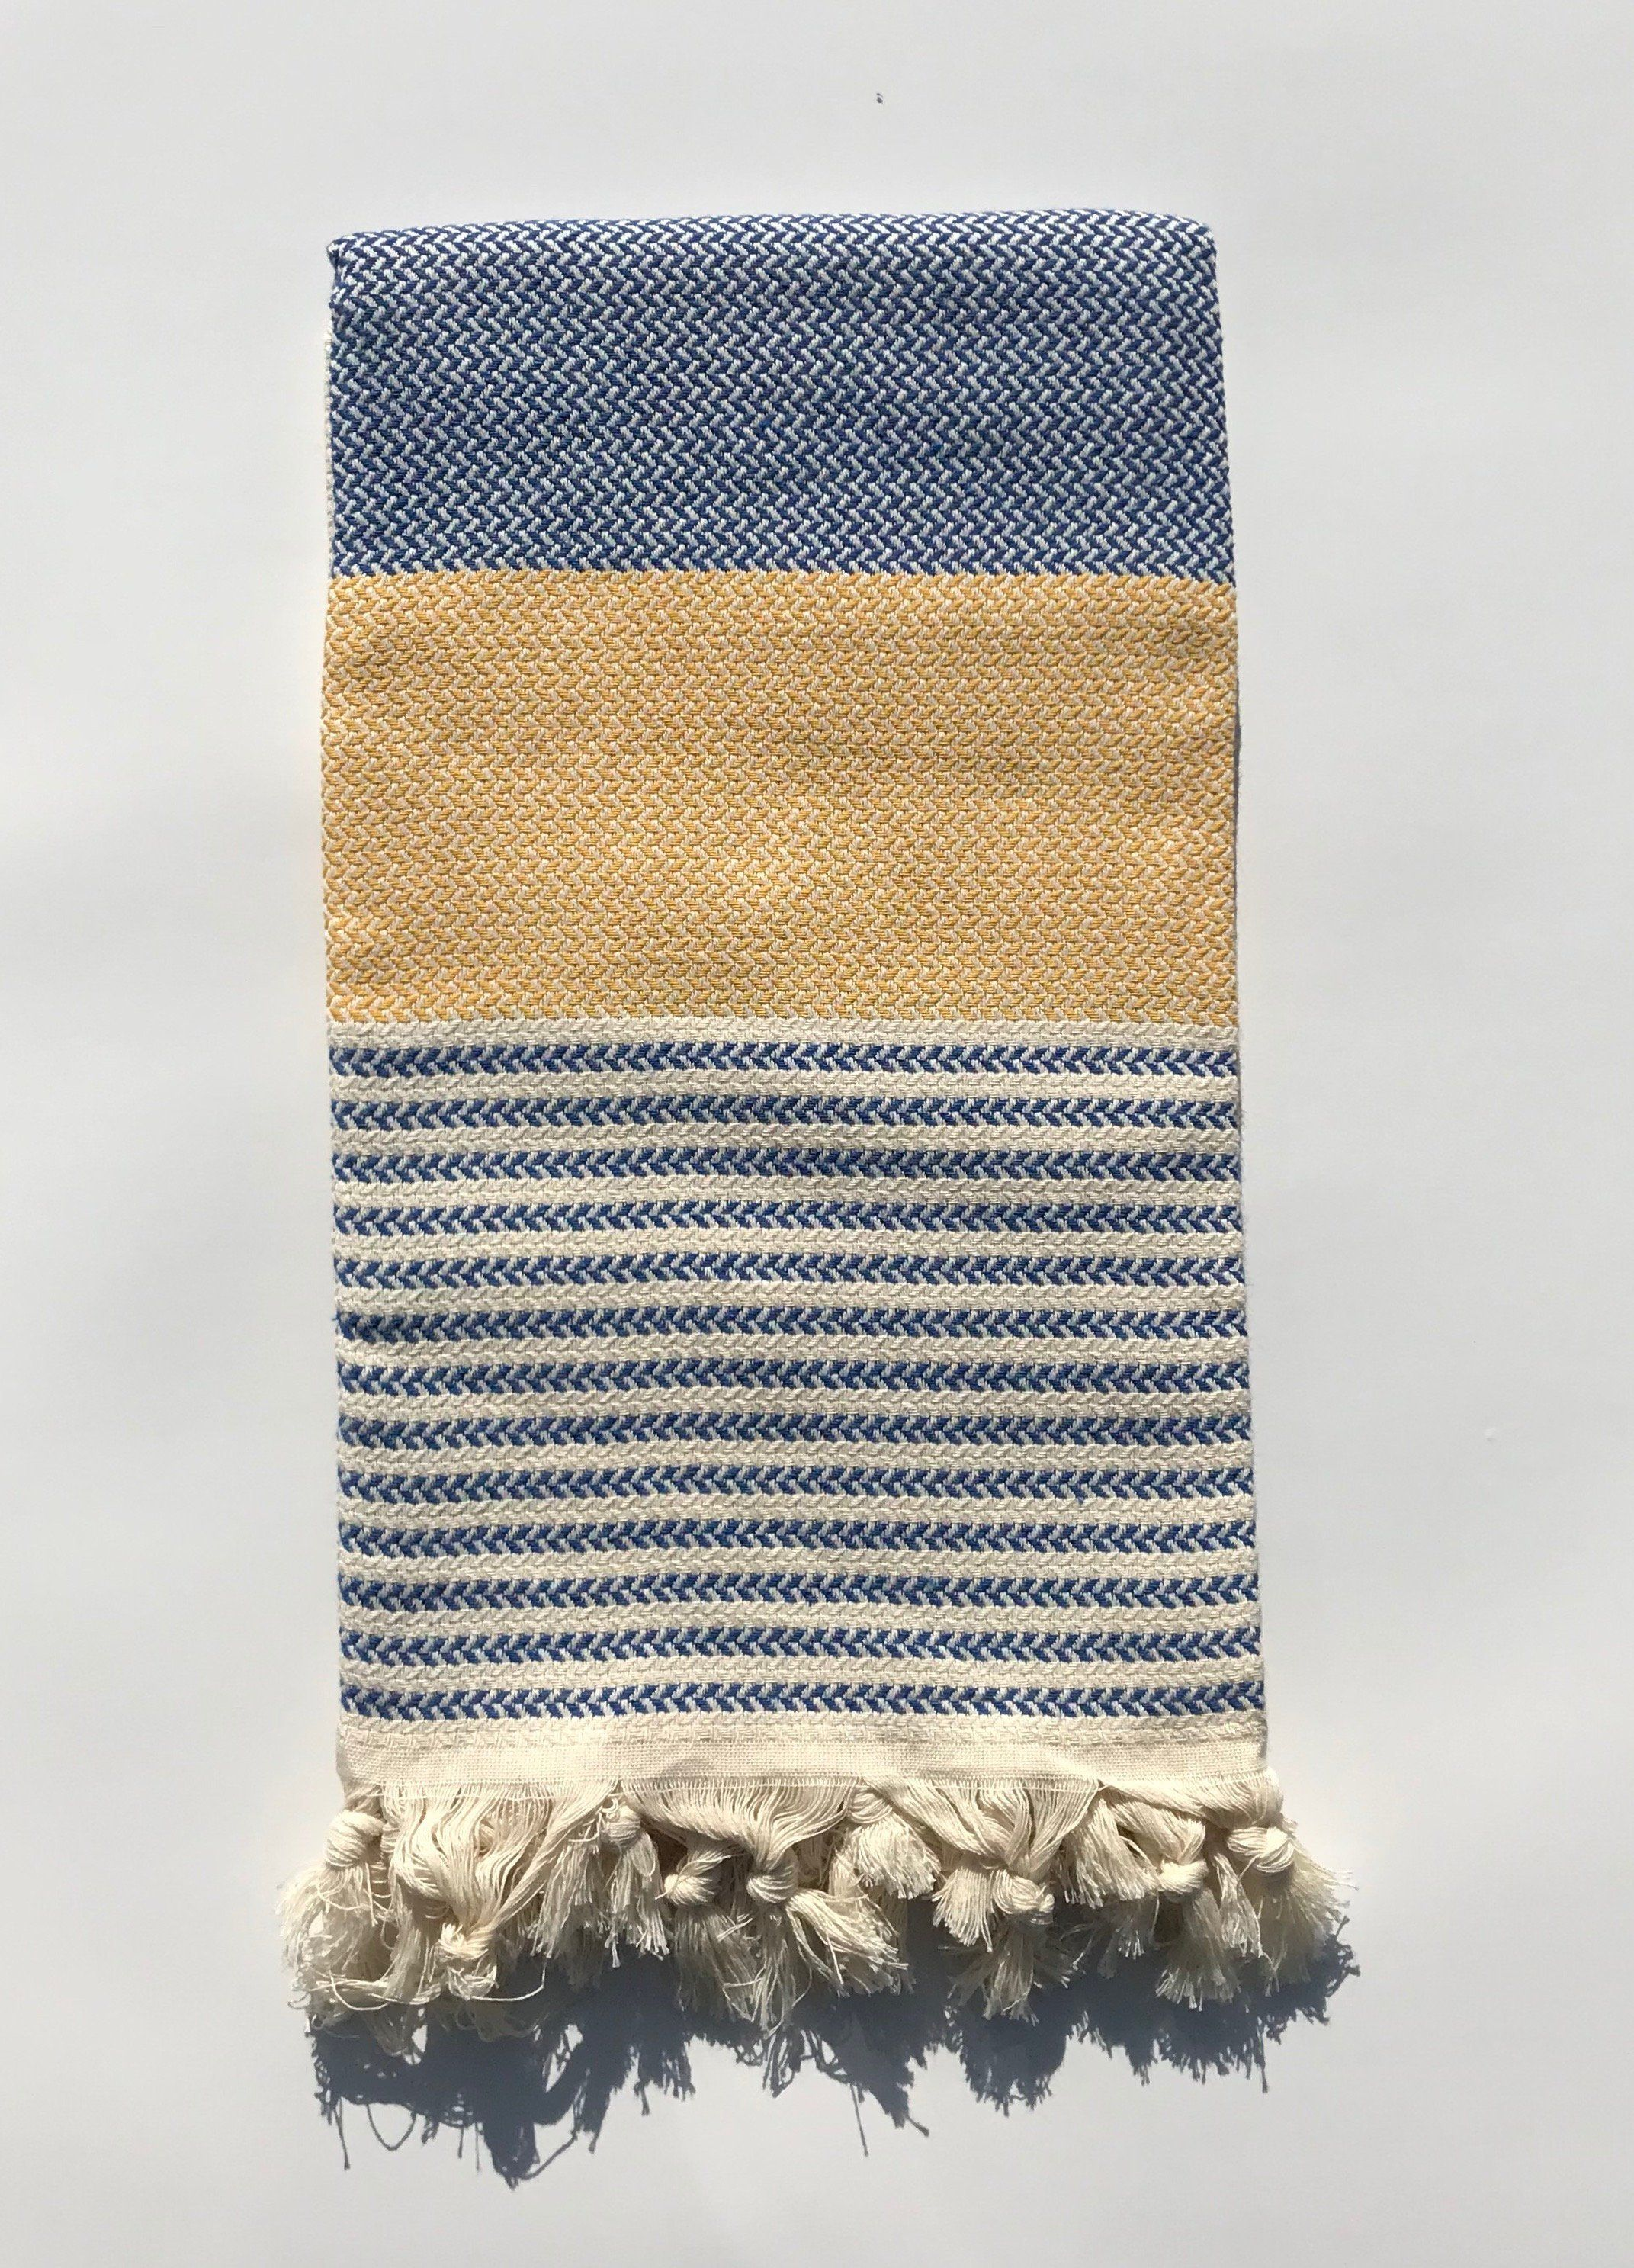 Pestemal Towel Turkish Towel Bath Towel Cotton Towel Eco Friendly